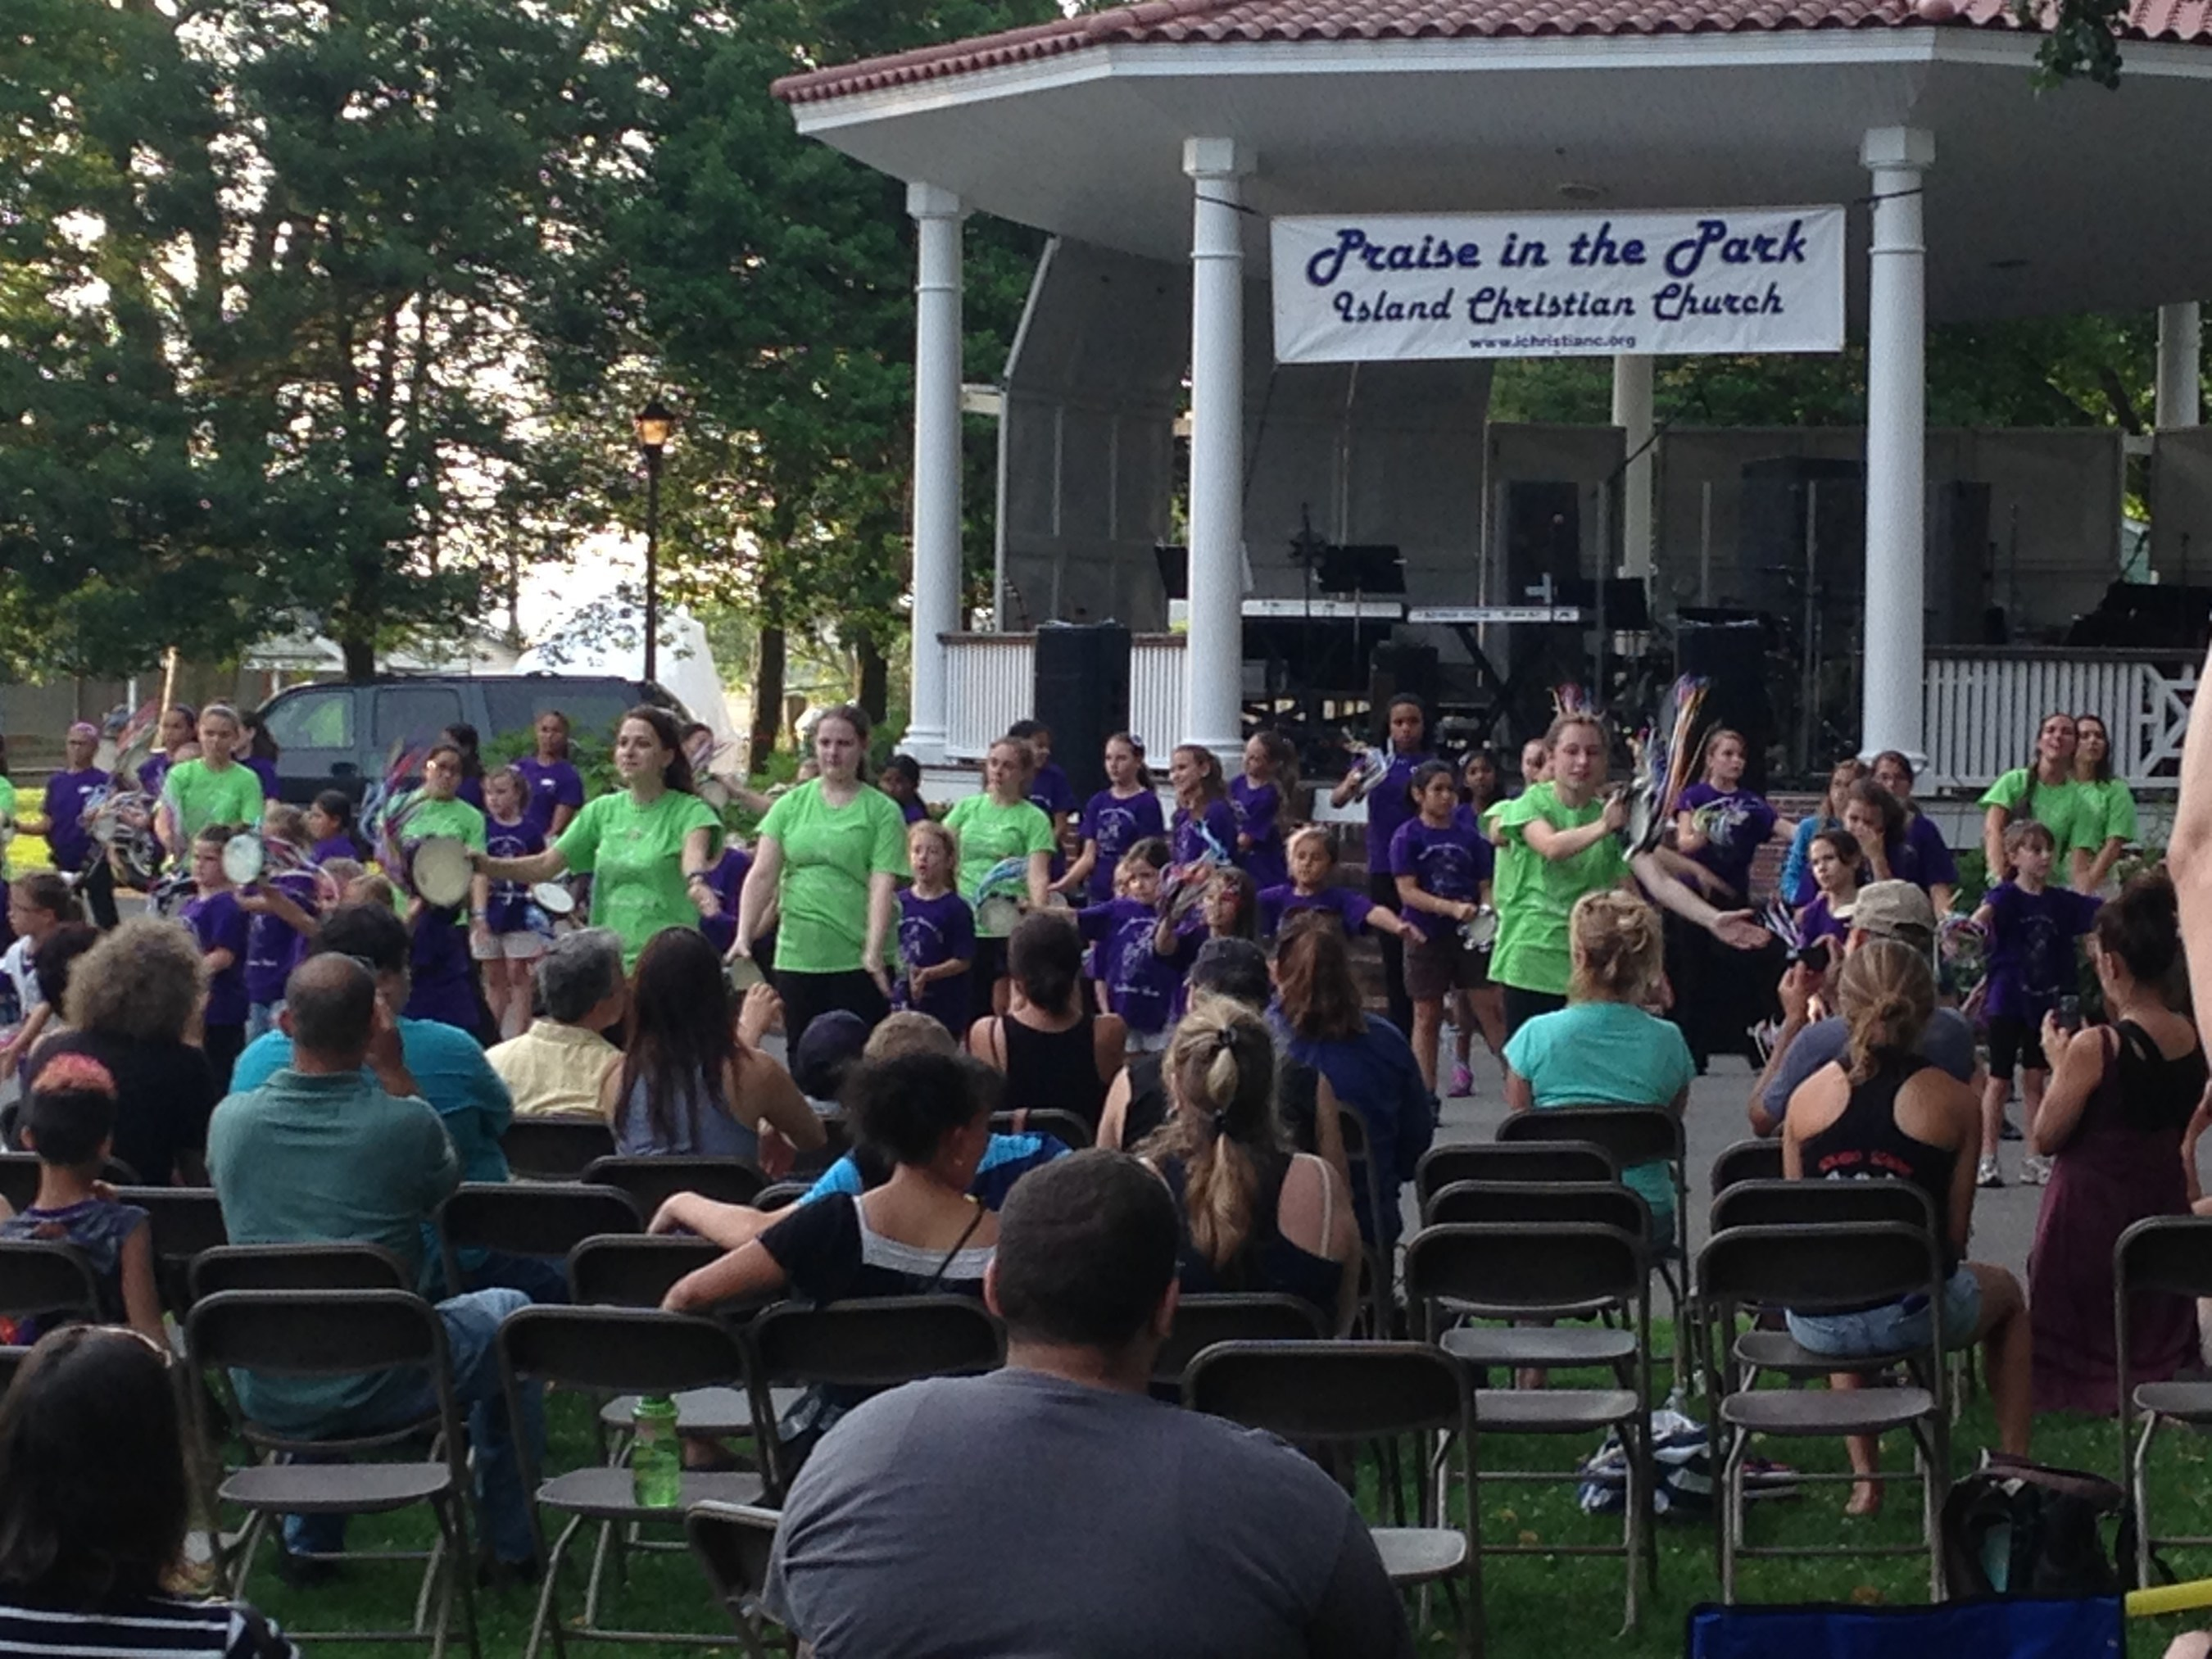 Island Christian Church Hosted Annual Praise in the Park Celebration